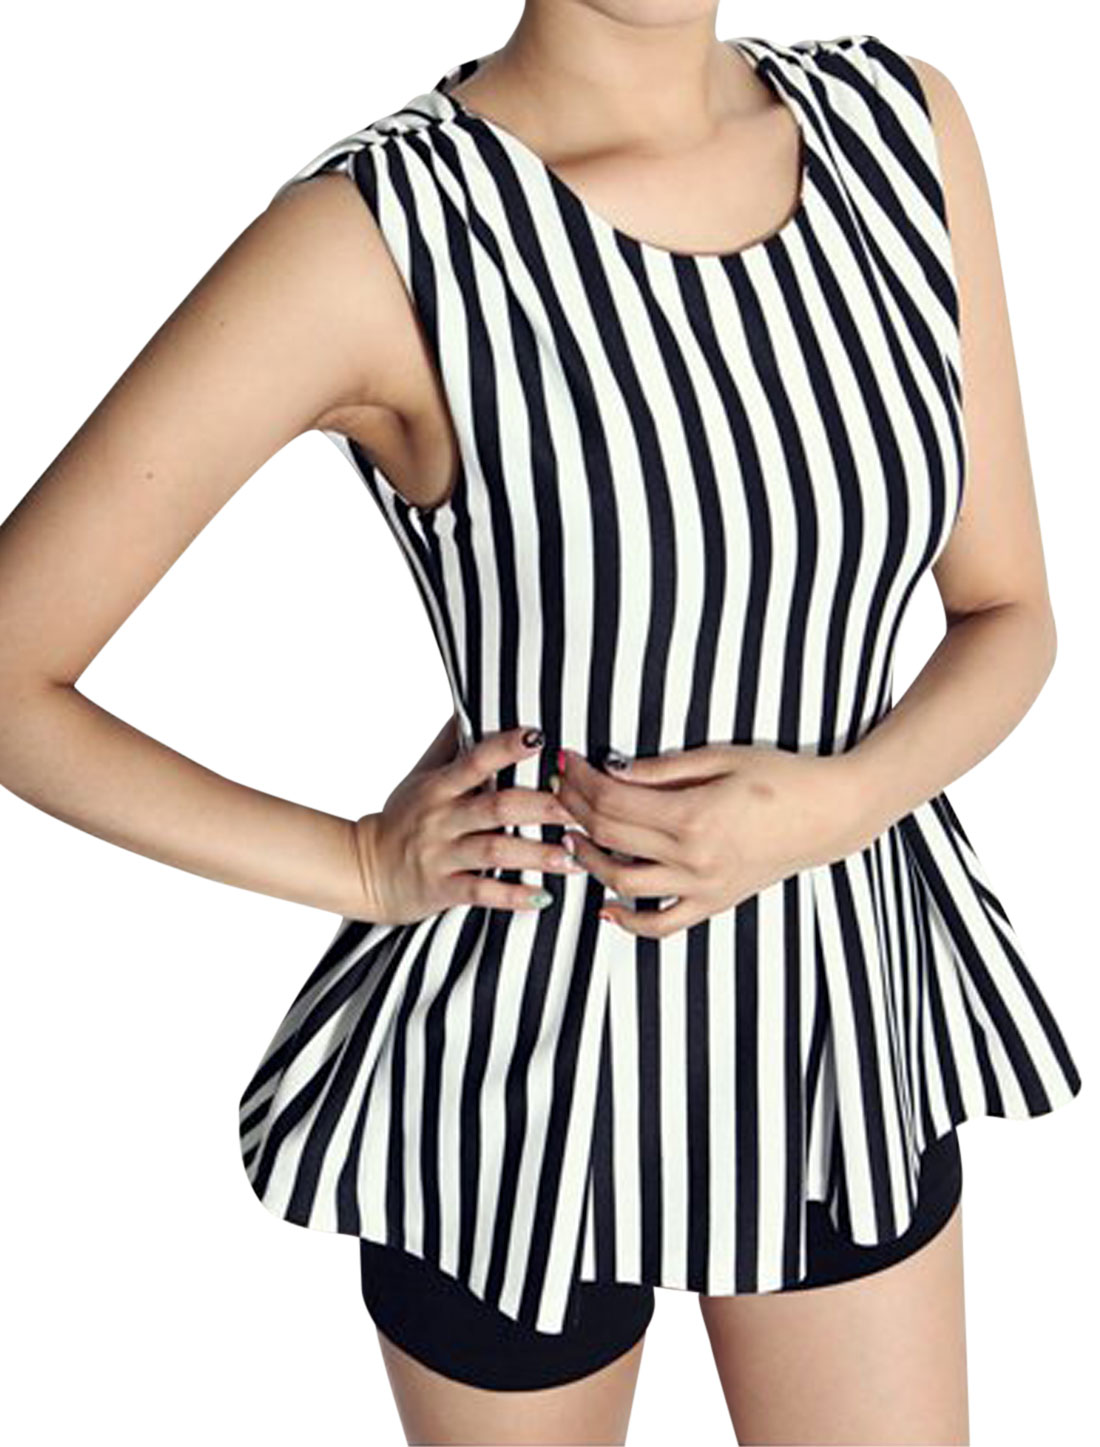 Women Vertical Stripes Pattern Backless Pleated Hem Fashion Top Black White S